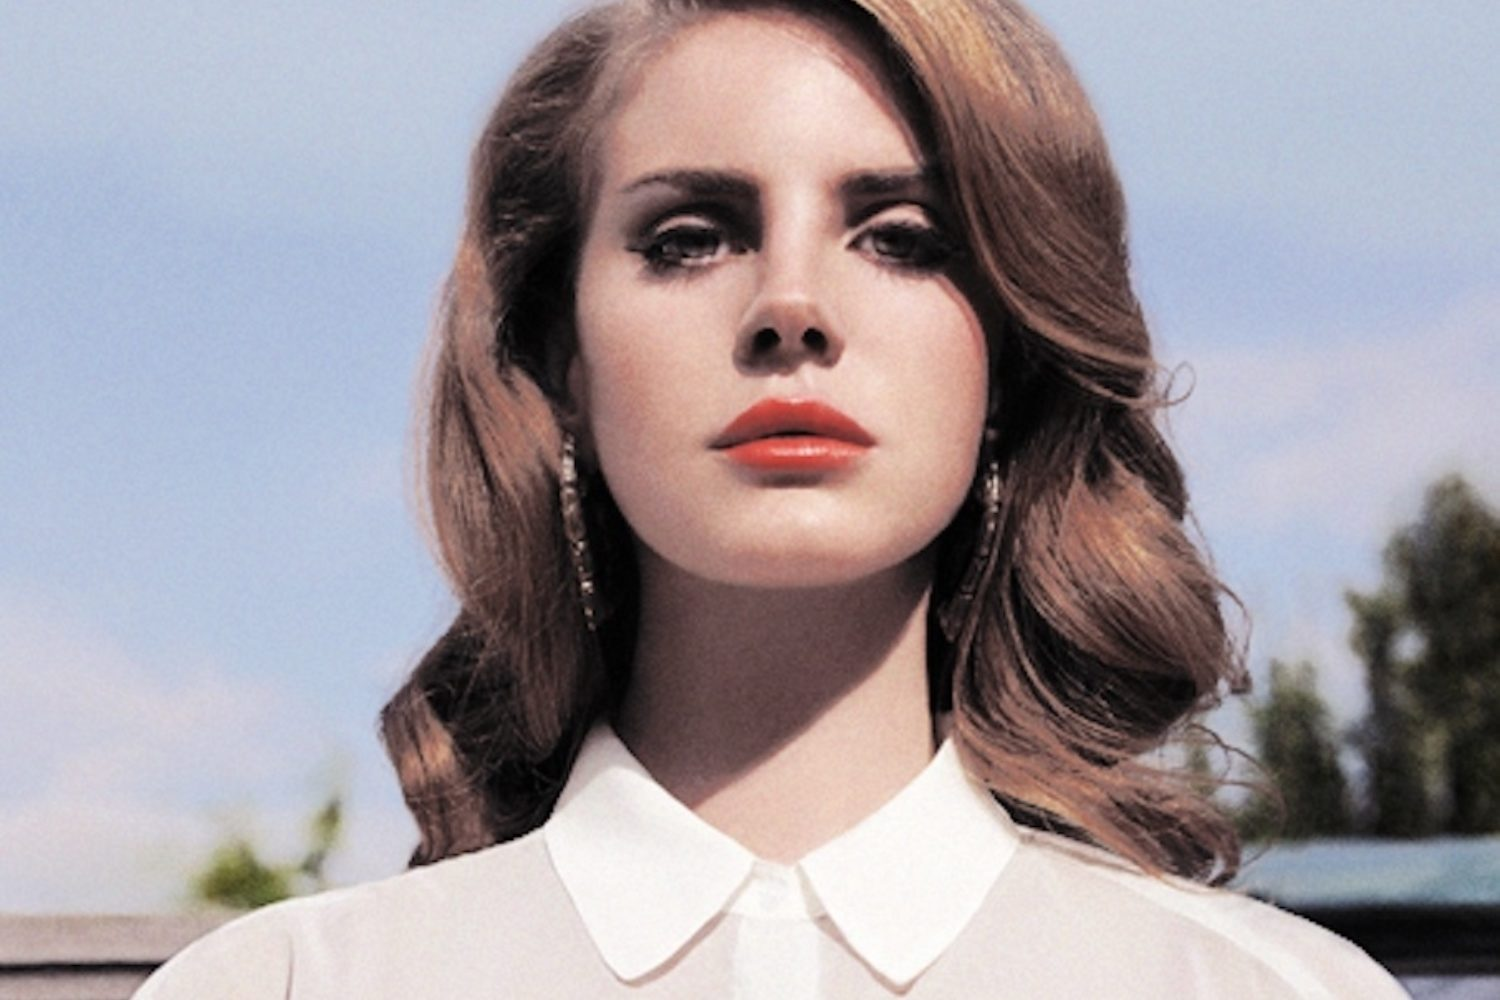 Hall Of Fame: Lana Del Rey, 'Born To Die'